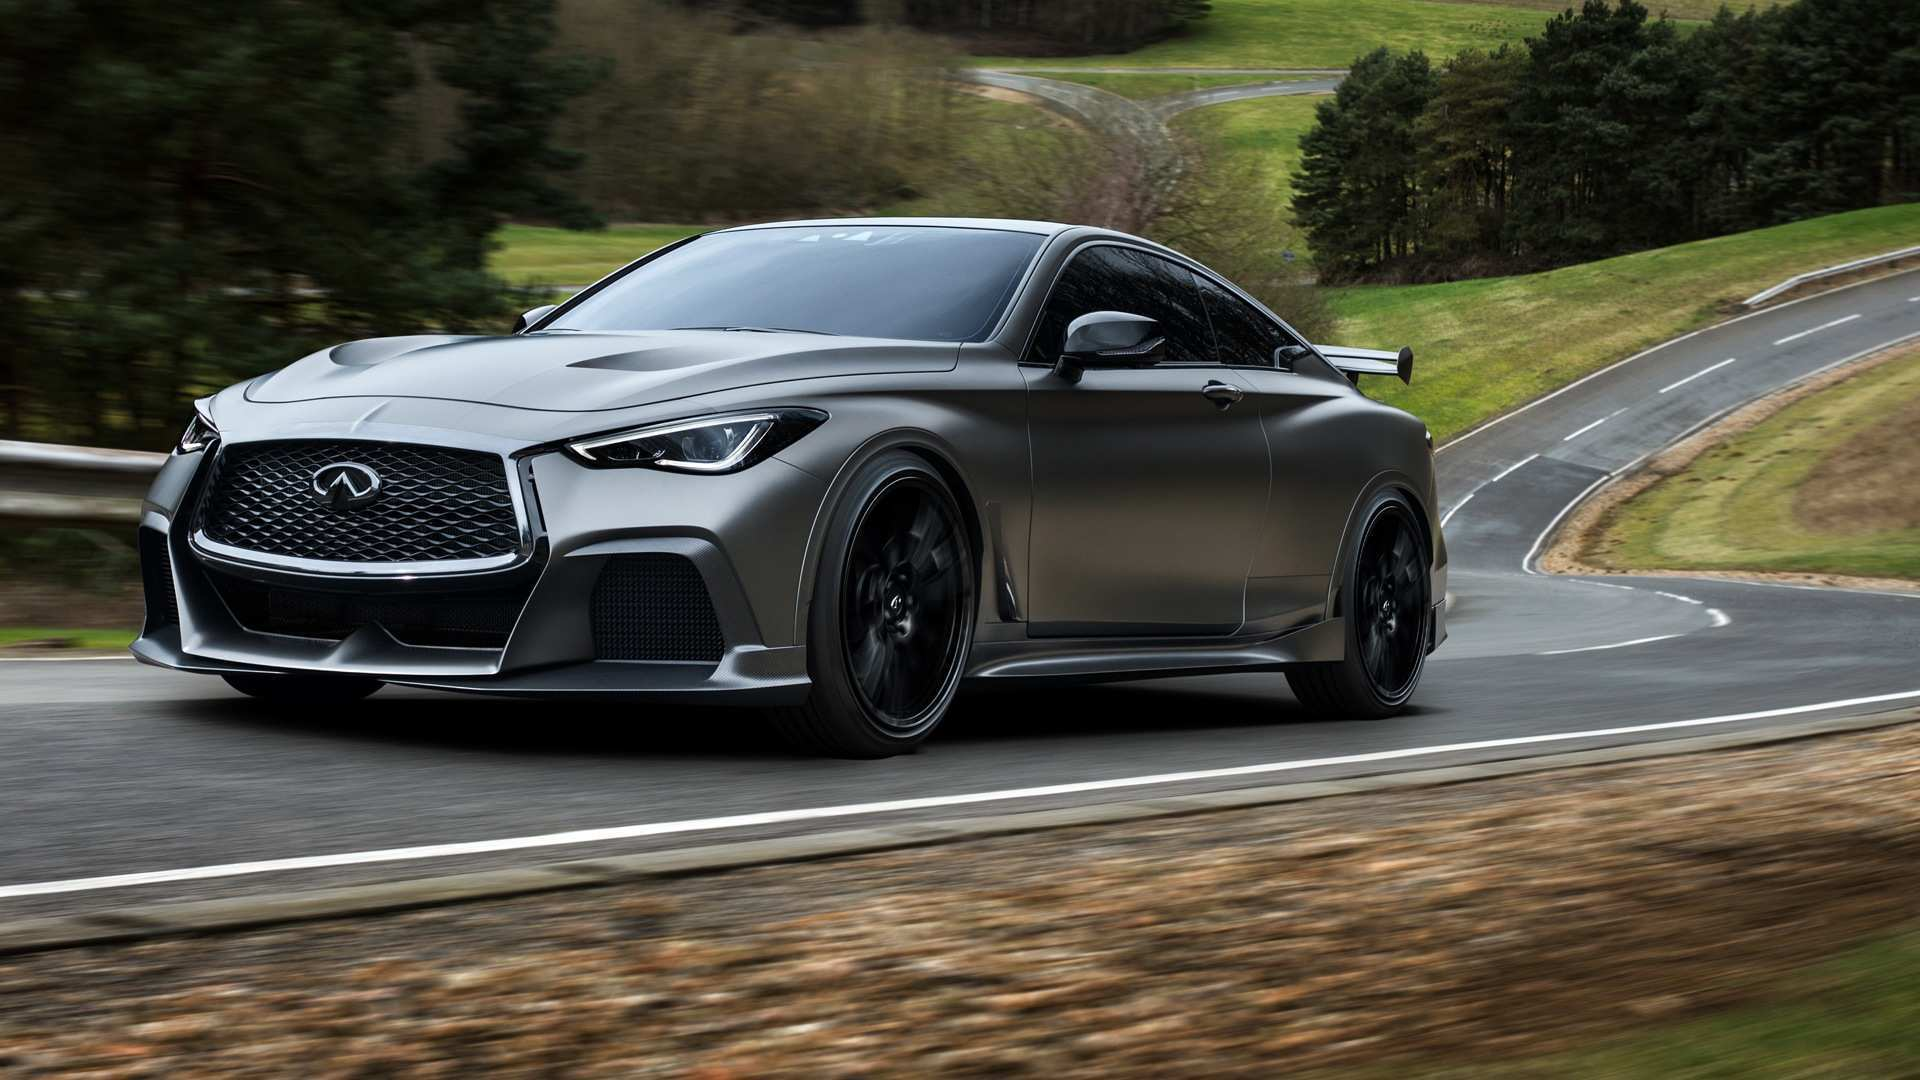 46 Best Review 2020 Infiniti Q60 Coupe Pictures with 2020 Infiniti Q60 Coupe